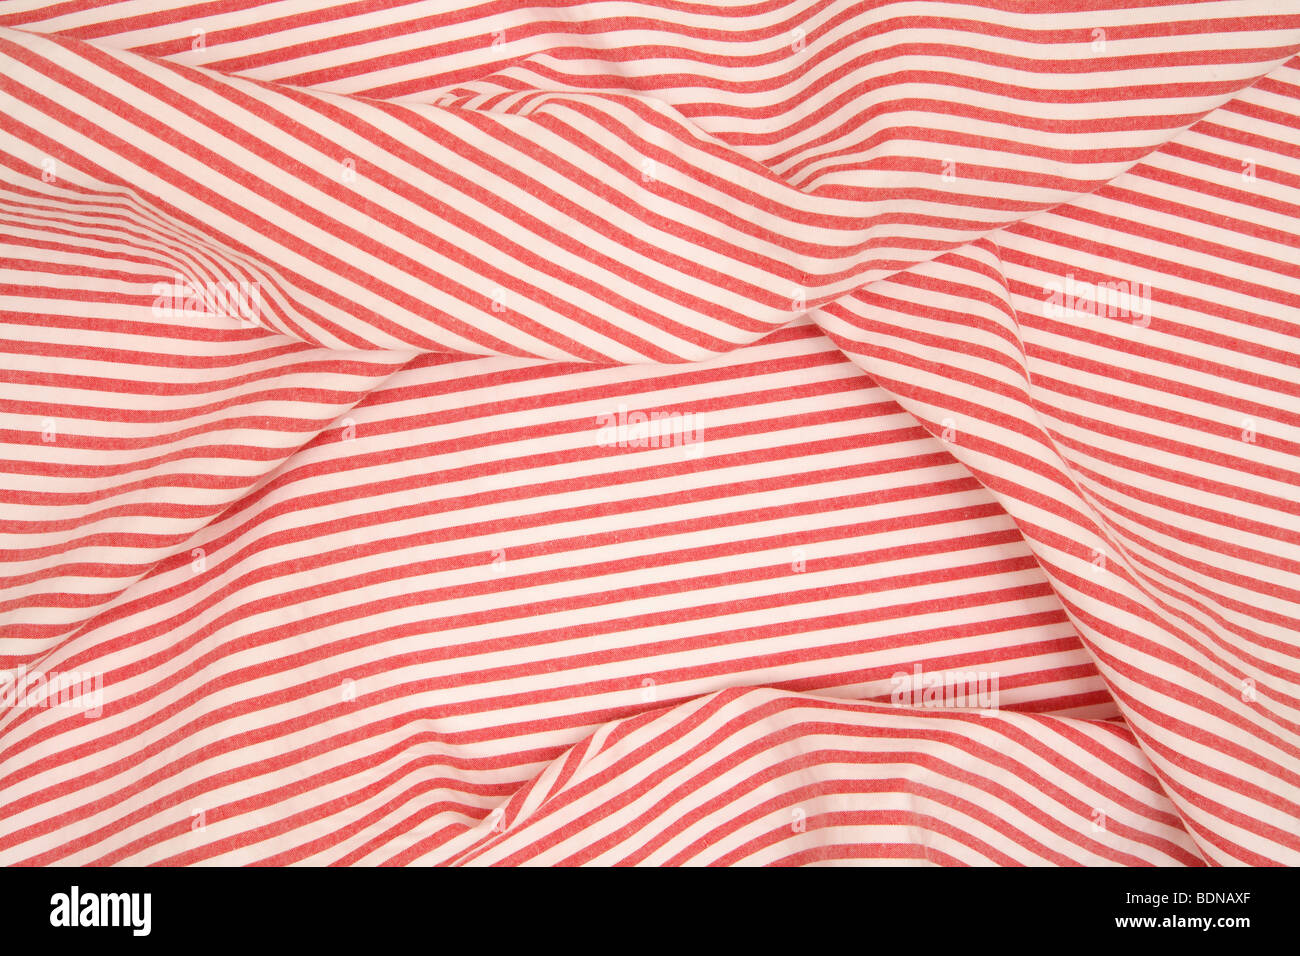 Red And White Striped Fabric Stock Photo 25670471 Alamy